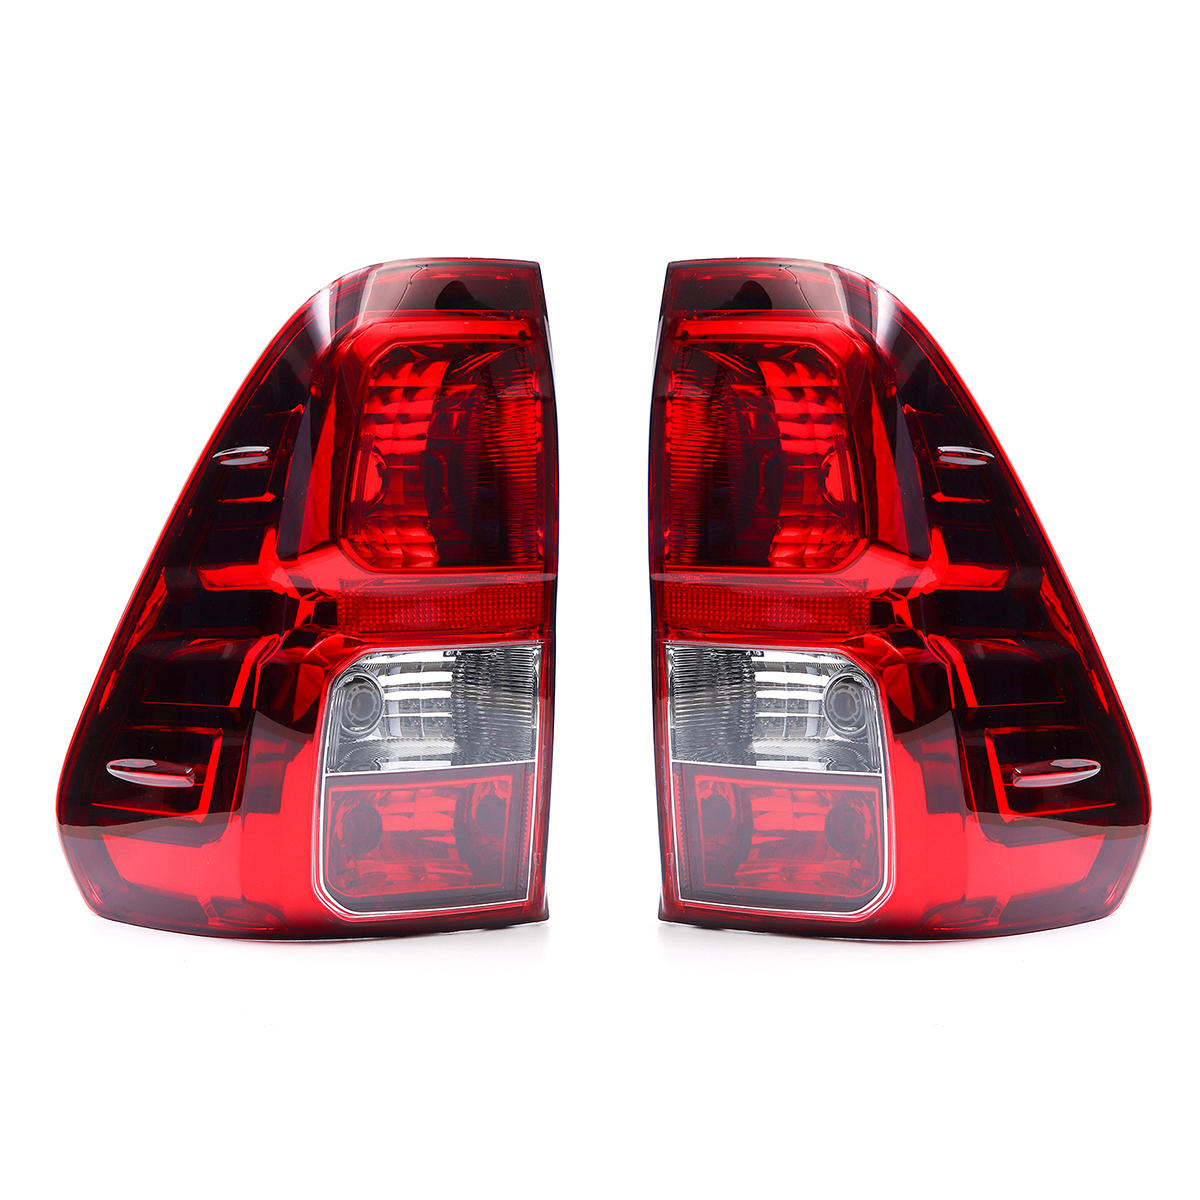 Car Rear Left Right Tail Light Brake Lamp Embly Without Bulb For Toyota Hilux Revo 2017 2018 Cod